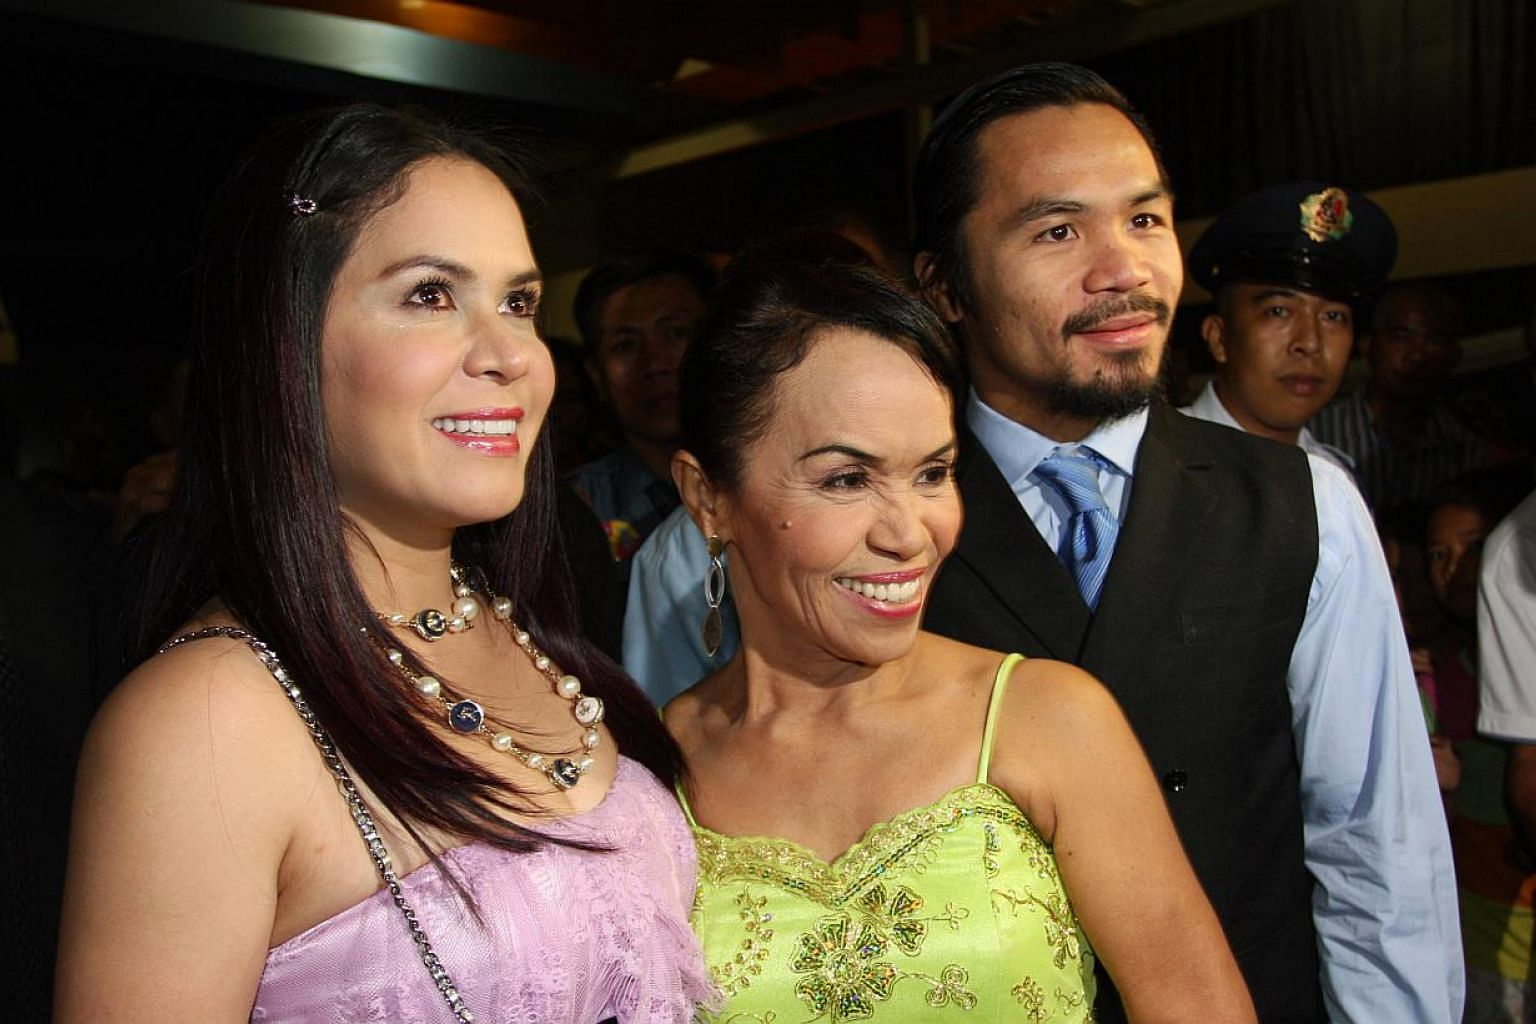 (From right) World welterweight boxing champion Manny Pacquiao is seen with his mother Dionisia Pacquiao and wife Jinkee Pacquiao at the KCC Mall on May 15, 2010 in General Santos, Philippines. -- PHOTO:GETTY IMAGES